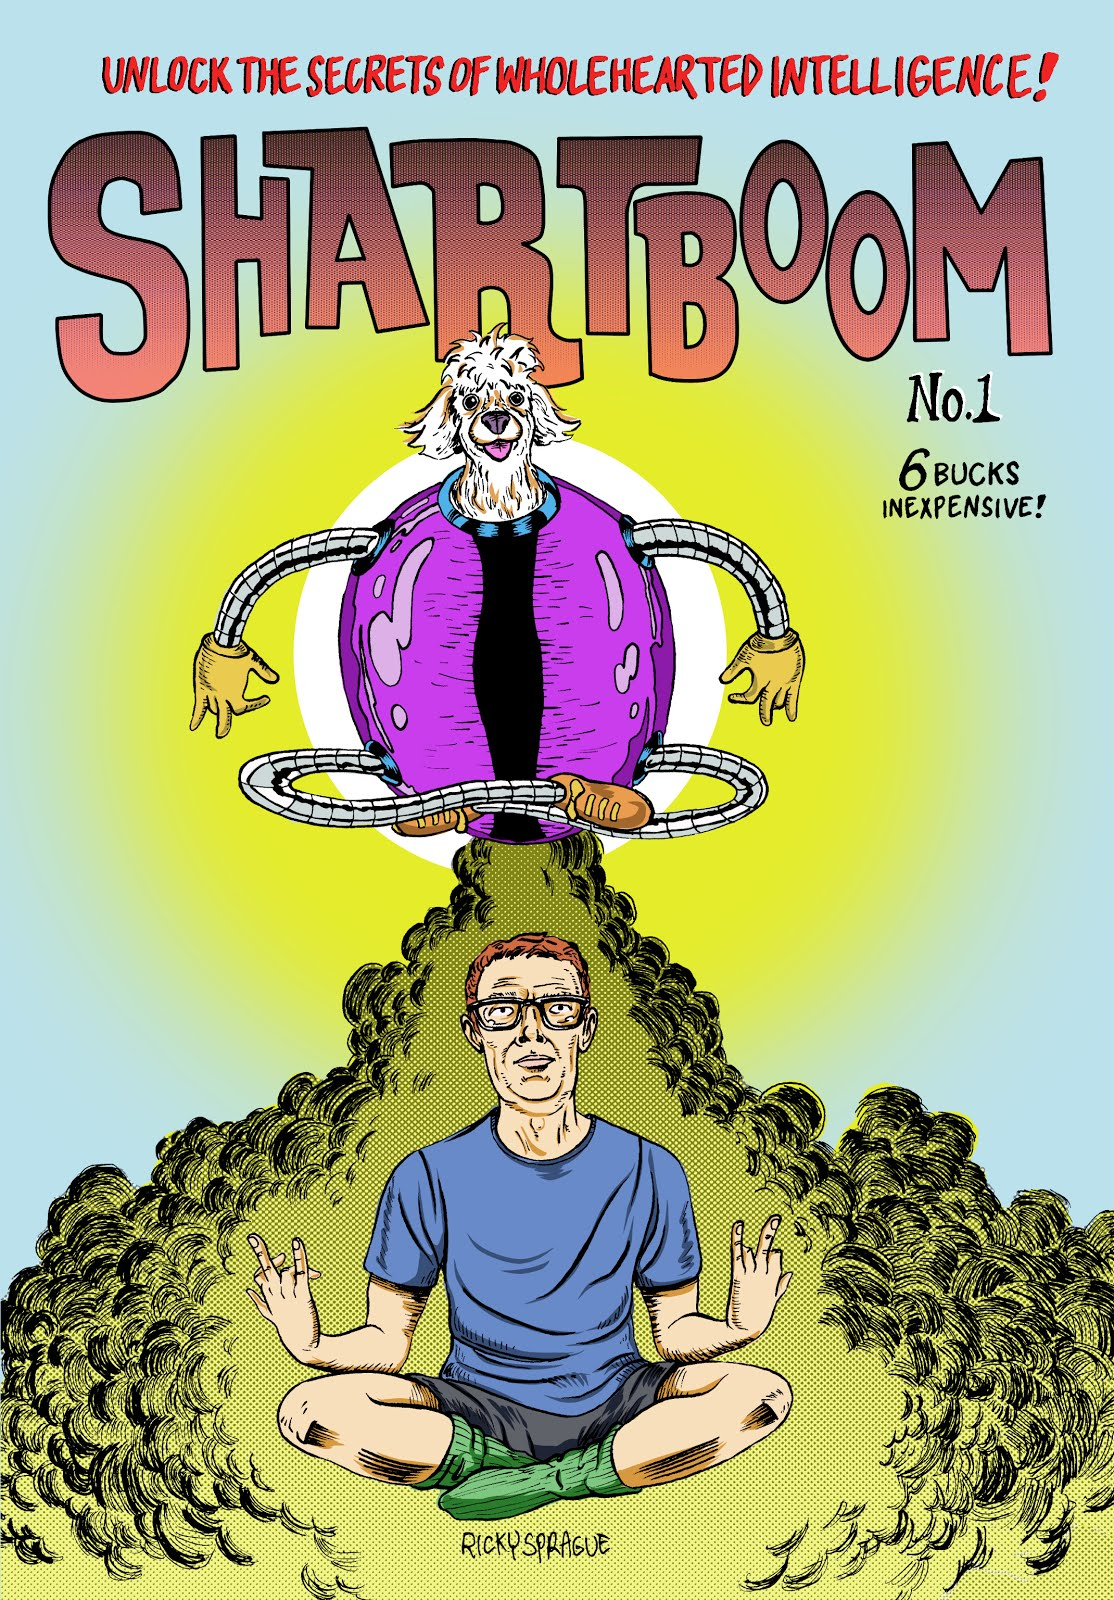 SHARTBOOM No 1 available now!